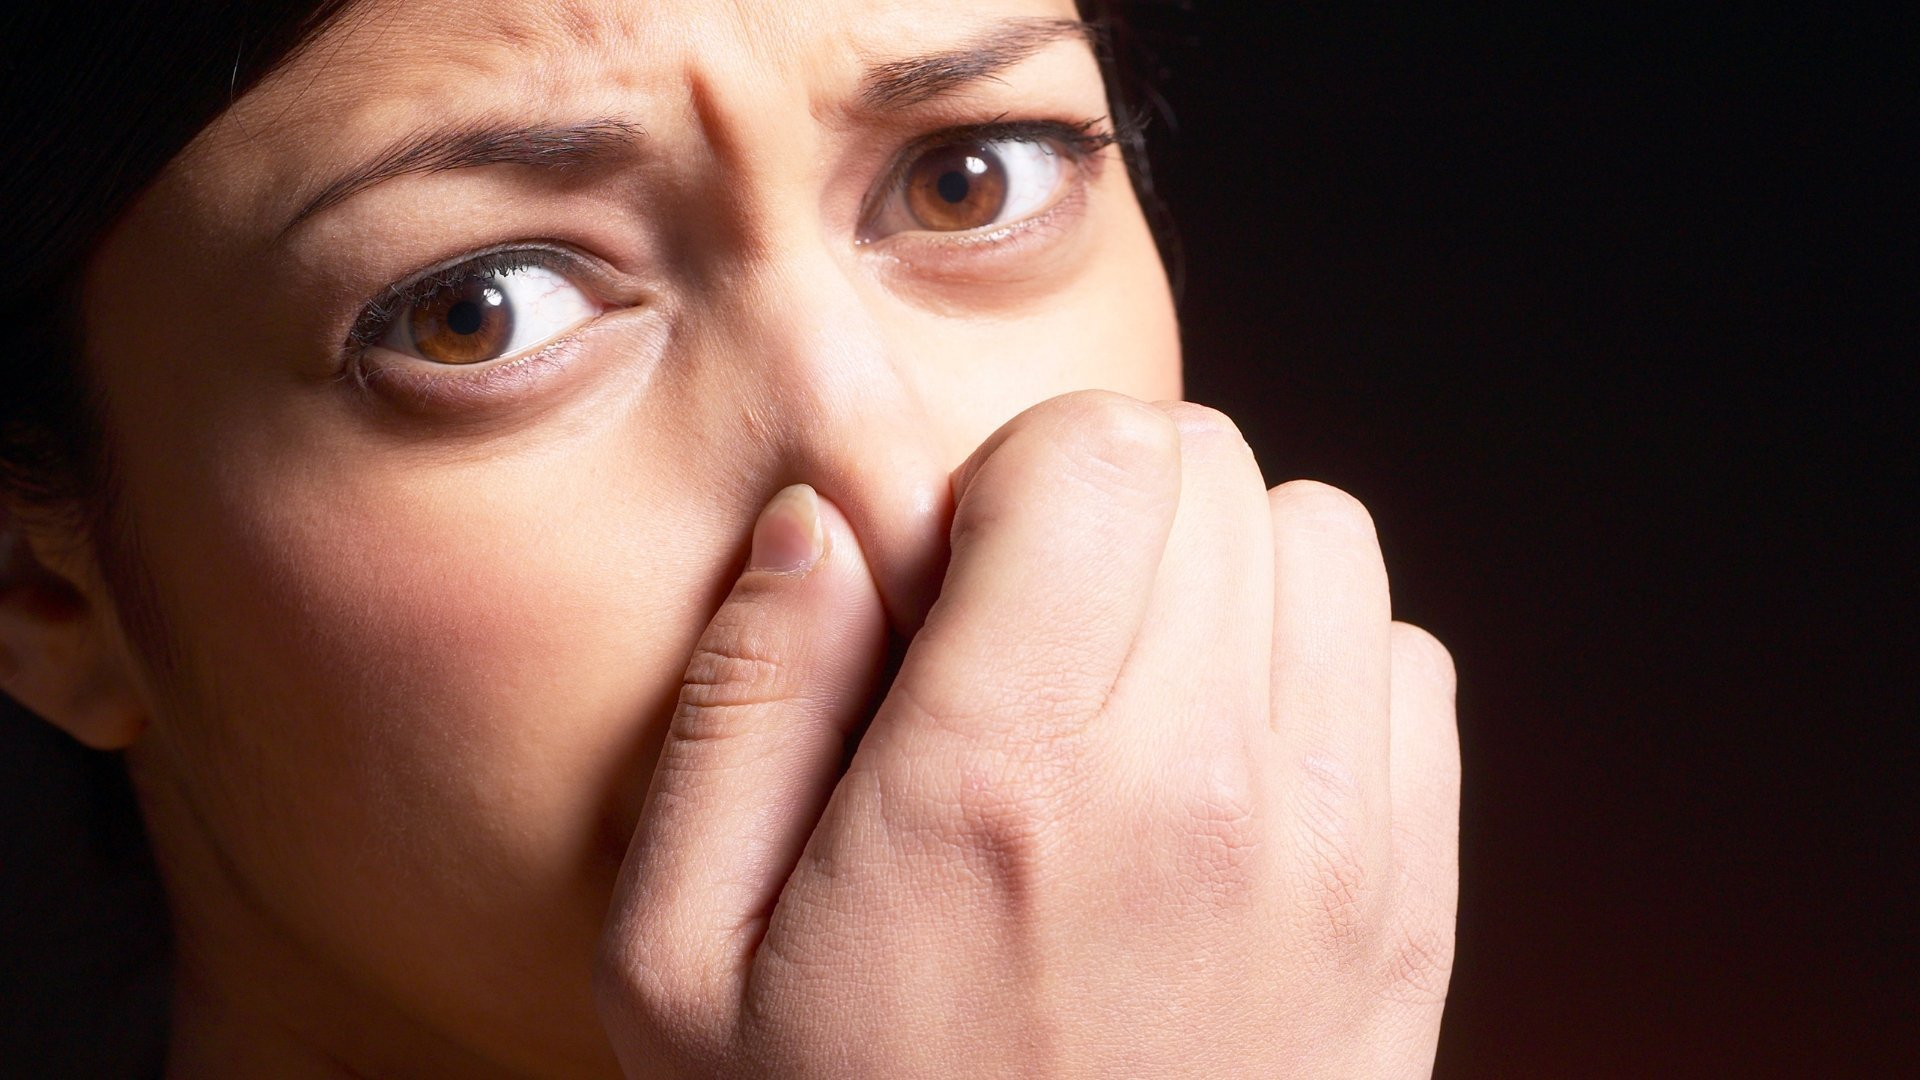 Women Holding Nose Because of Musty Smell